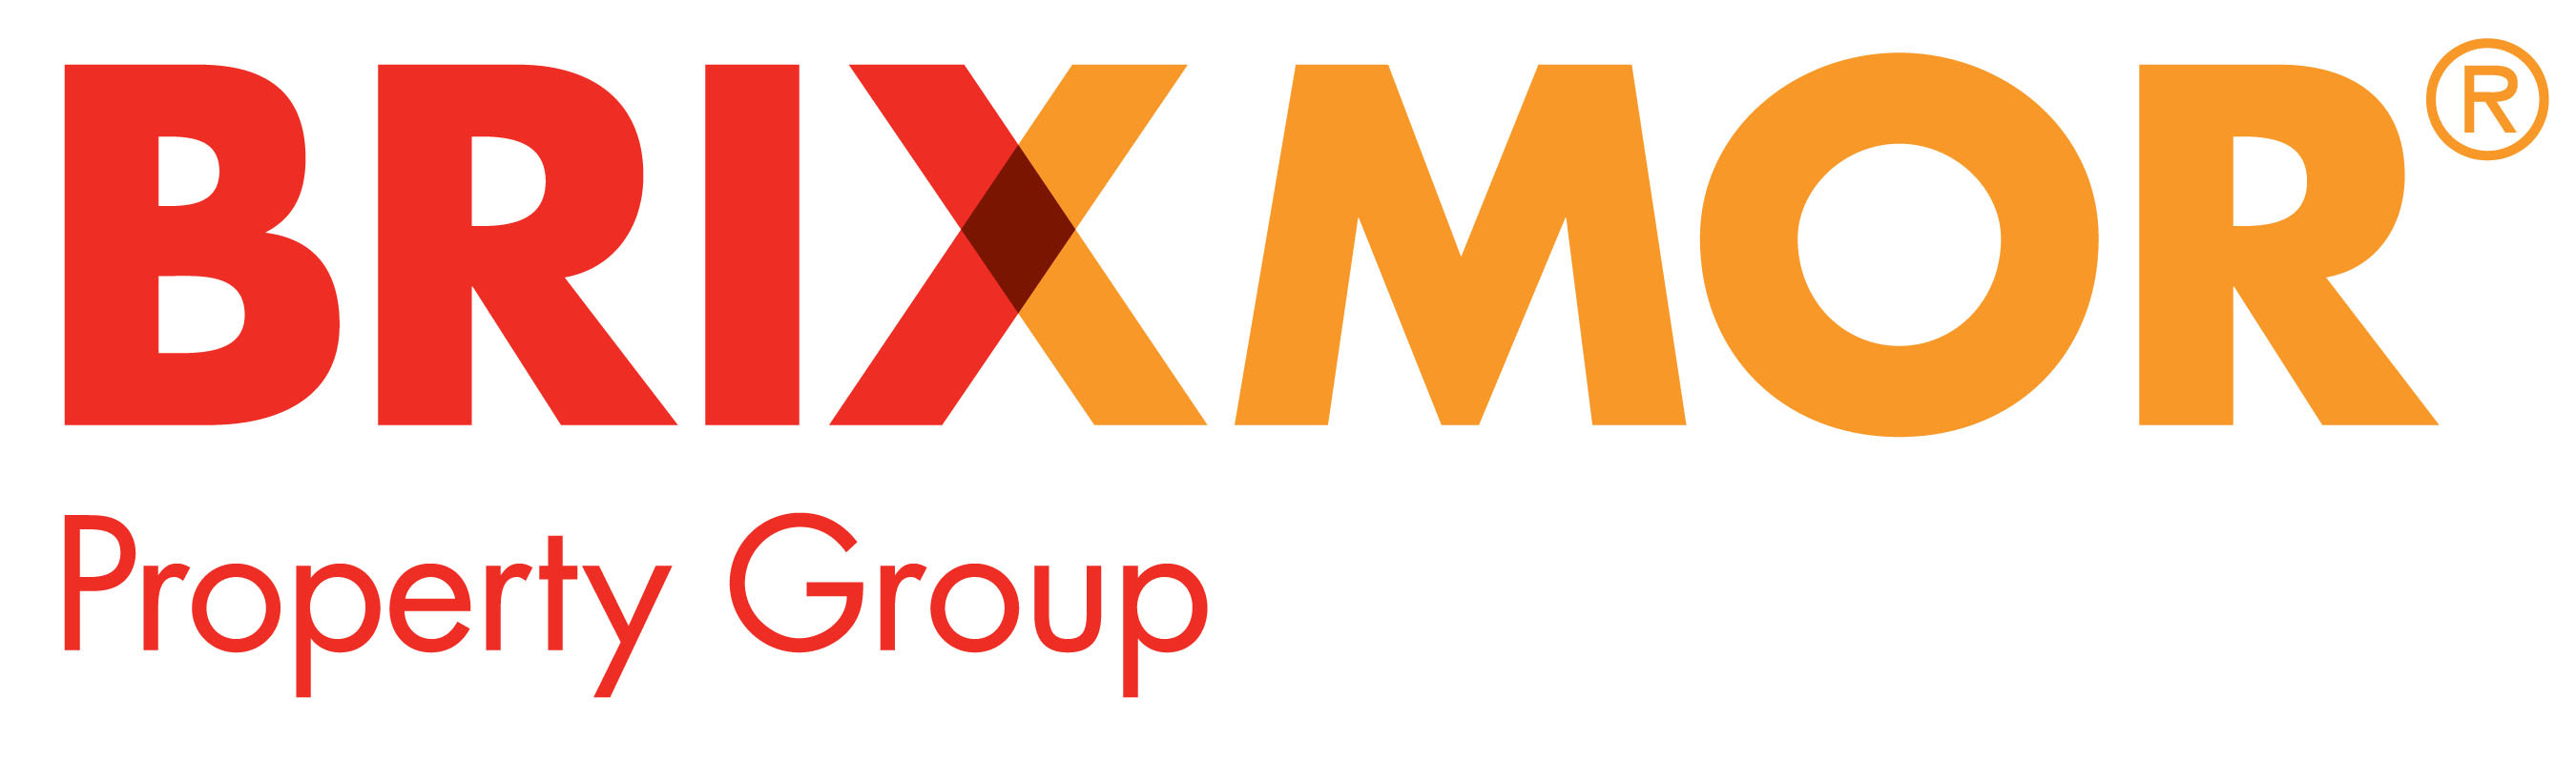 Brixmor Property Group Inc